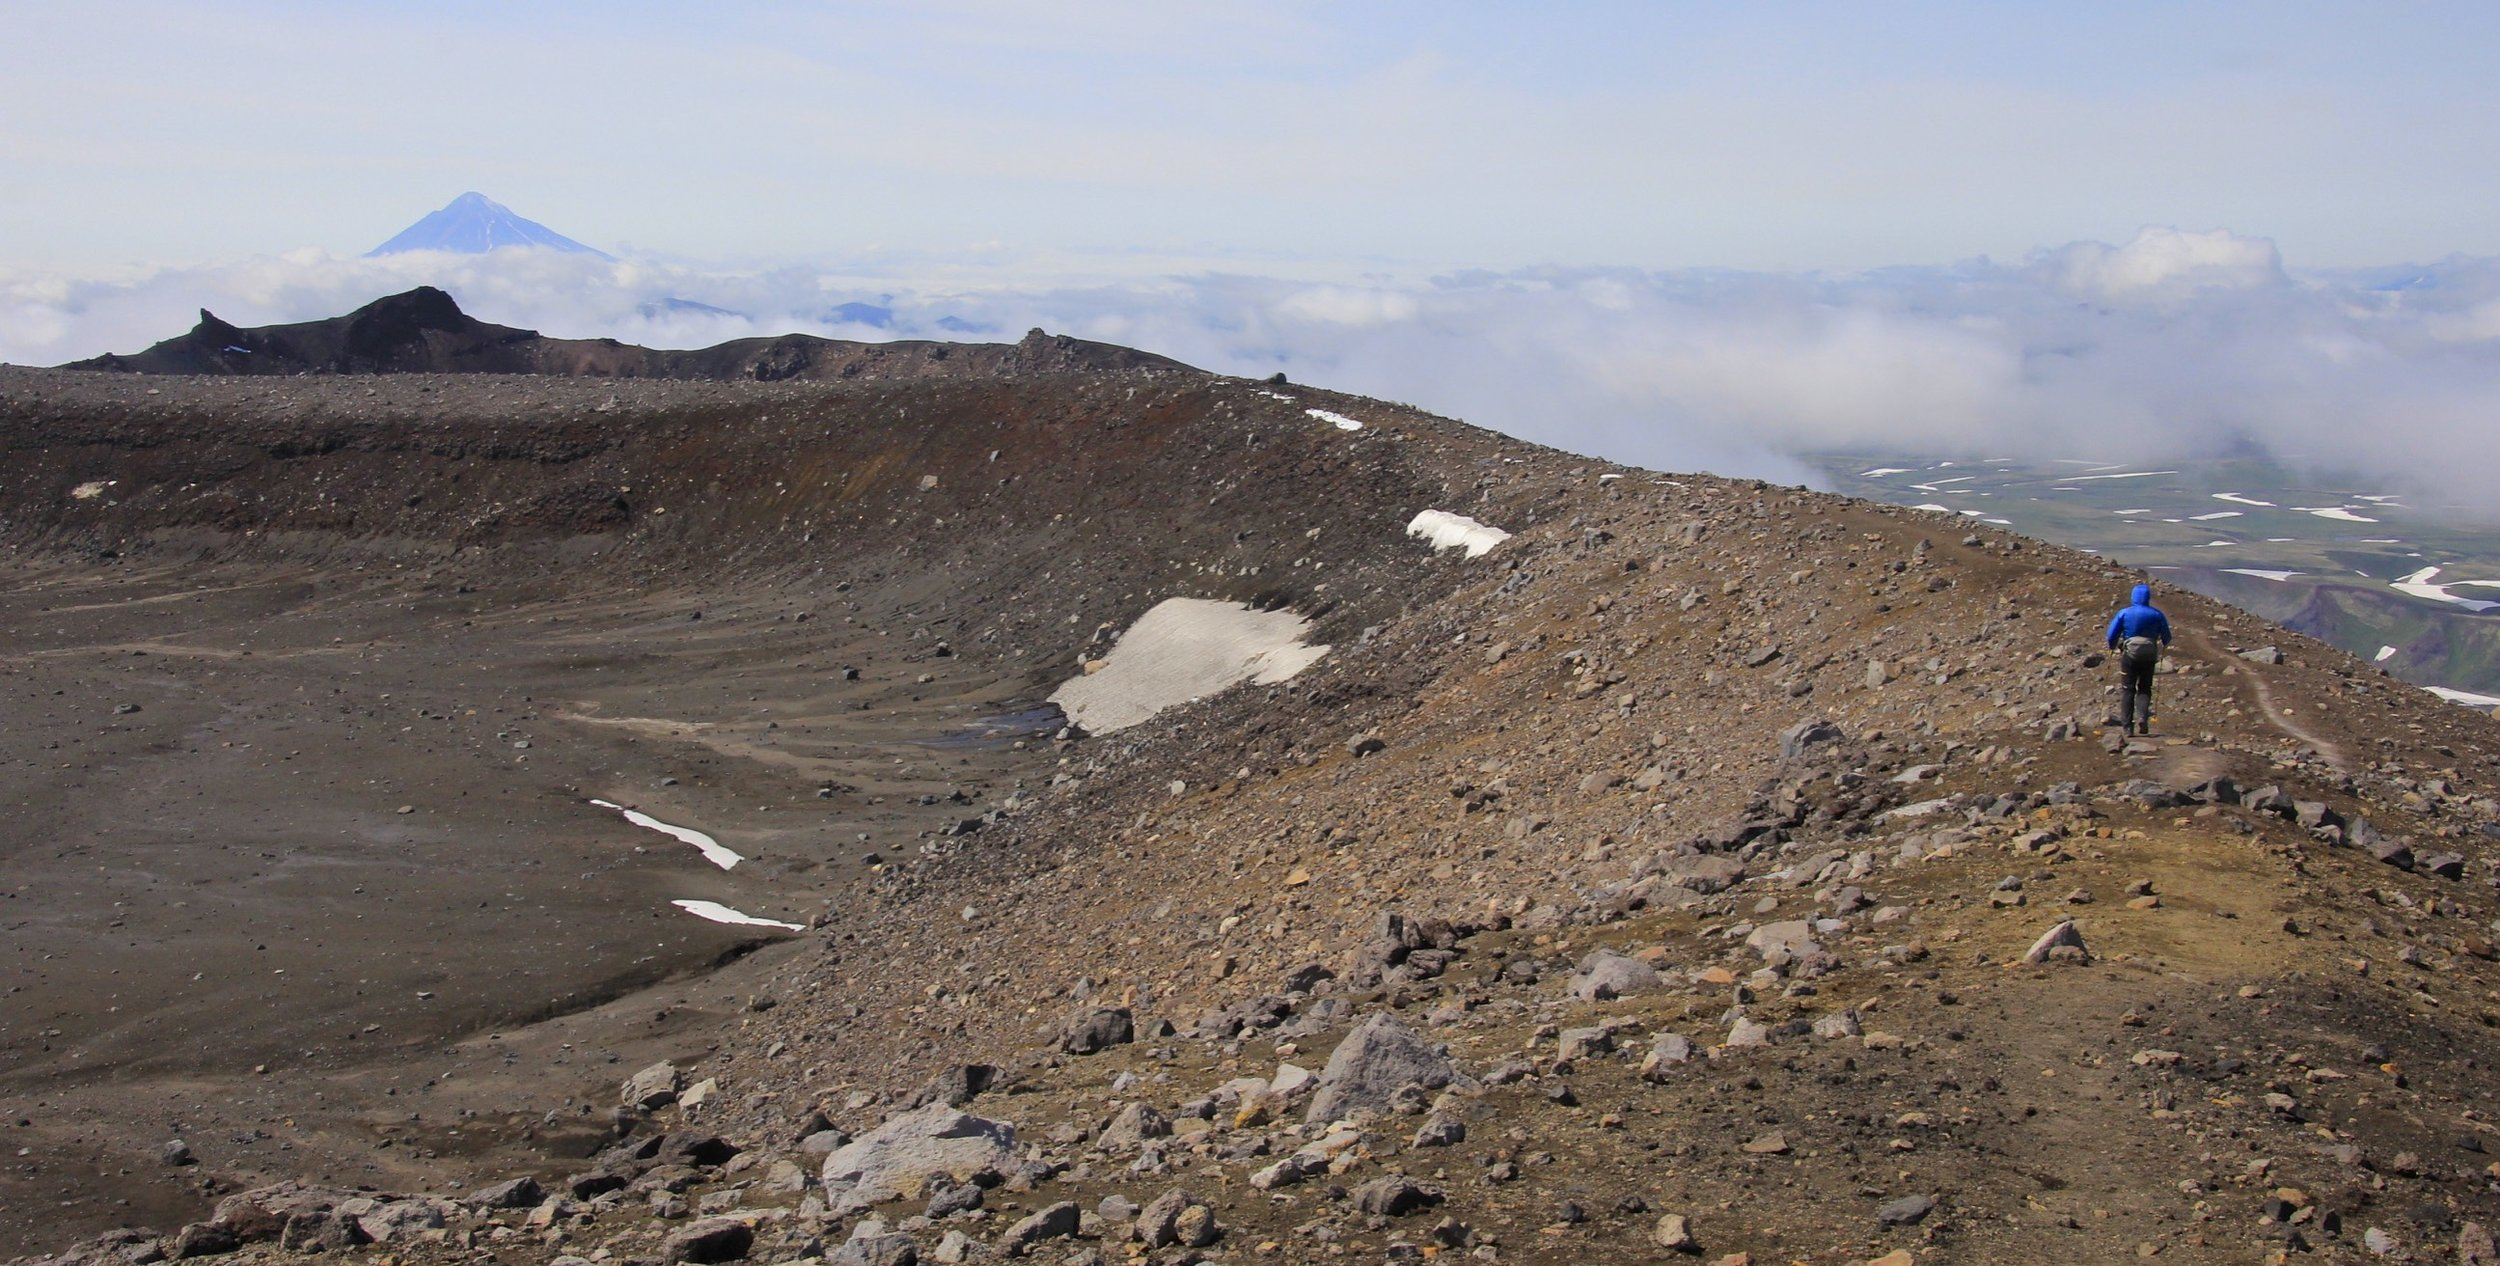 Walking on the rim of the Gorely crater with the Opala Volcano in the distance (2,475m).